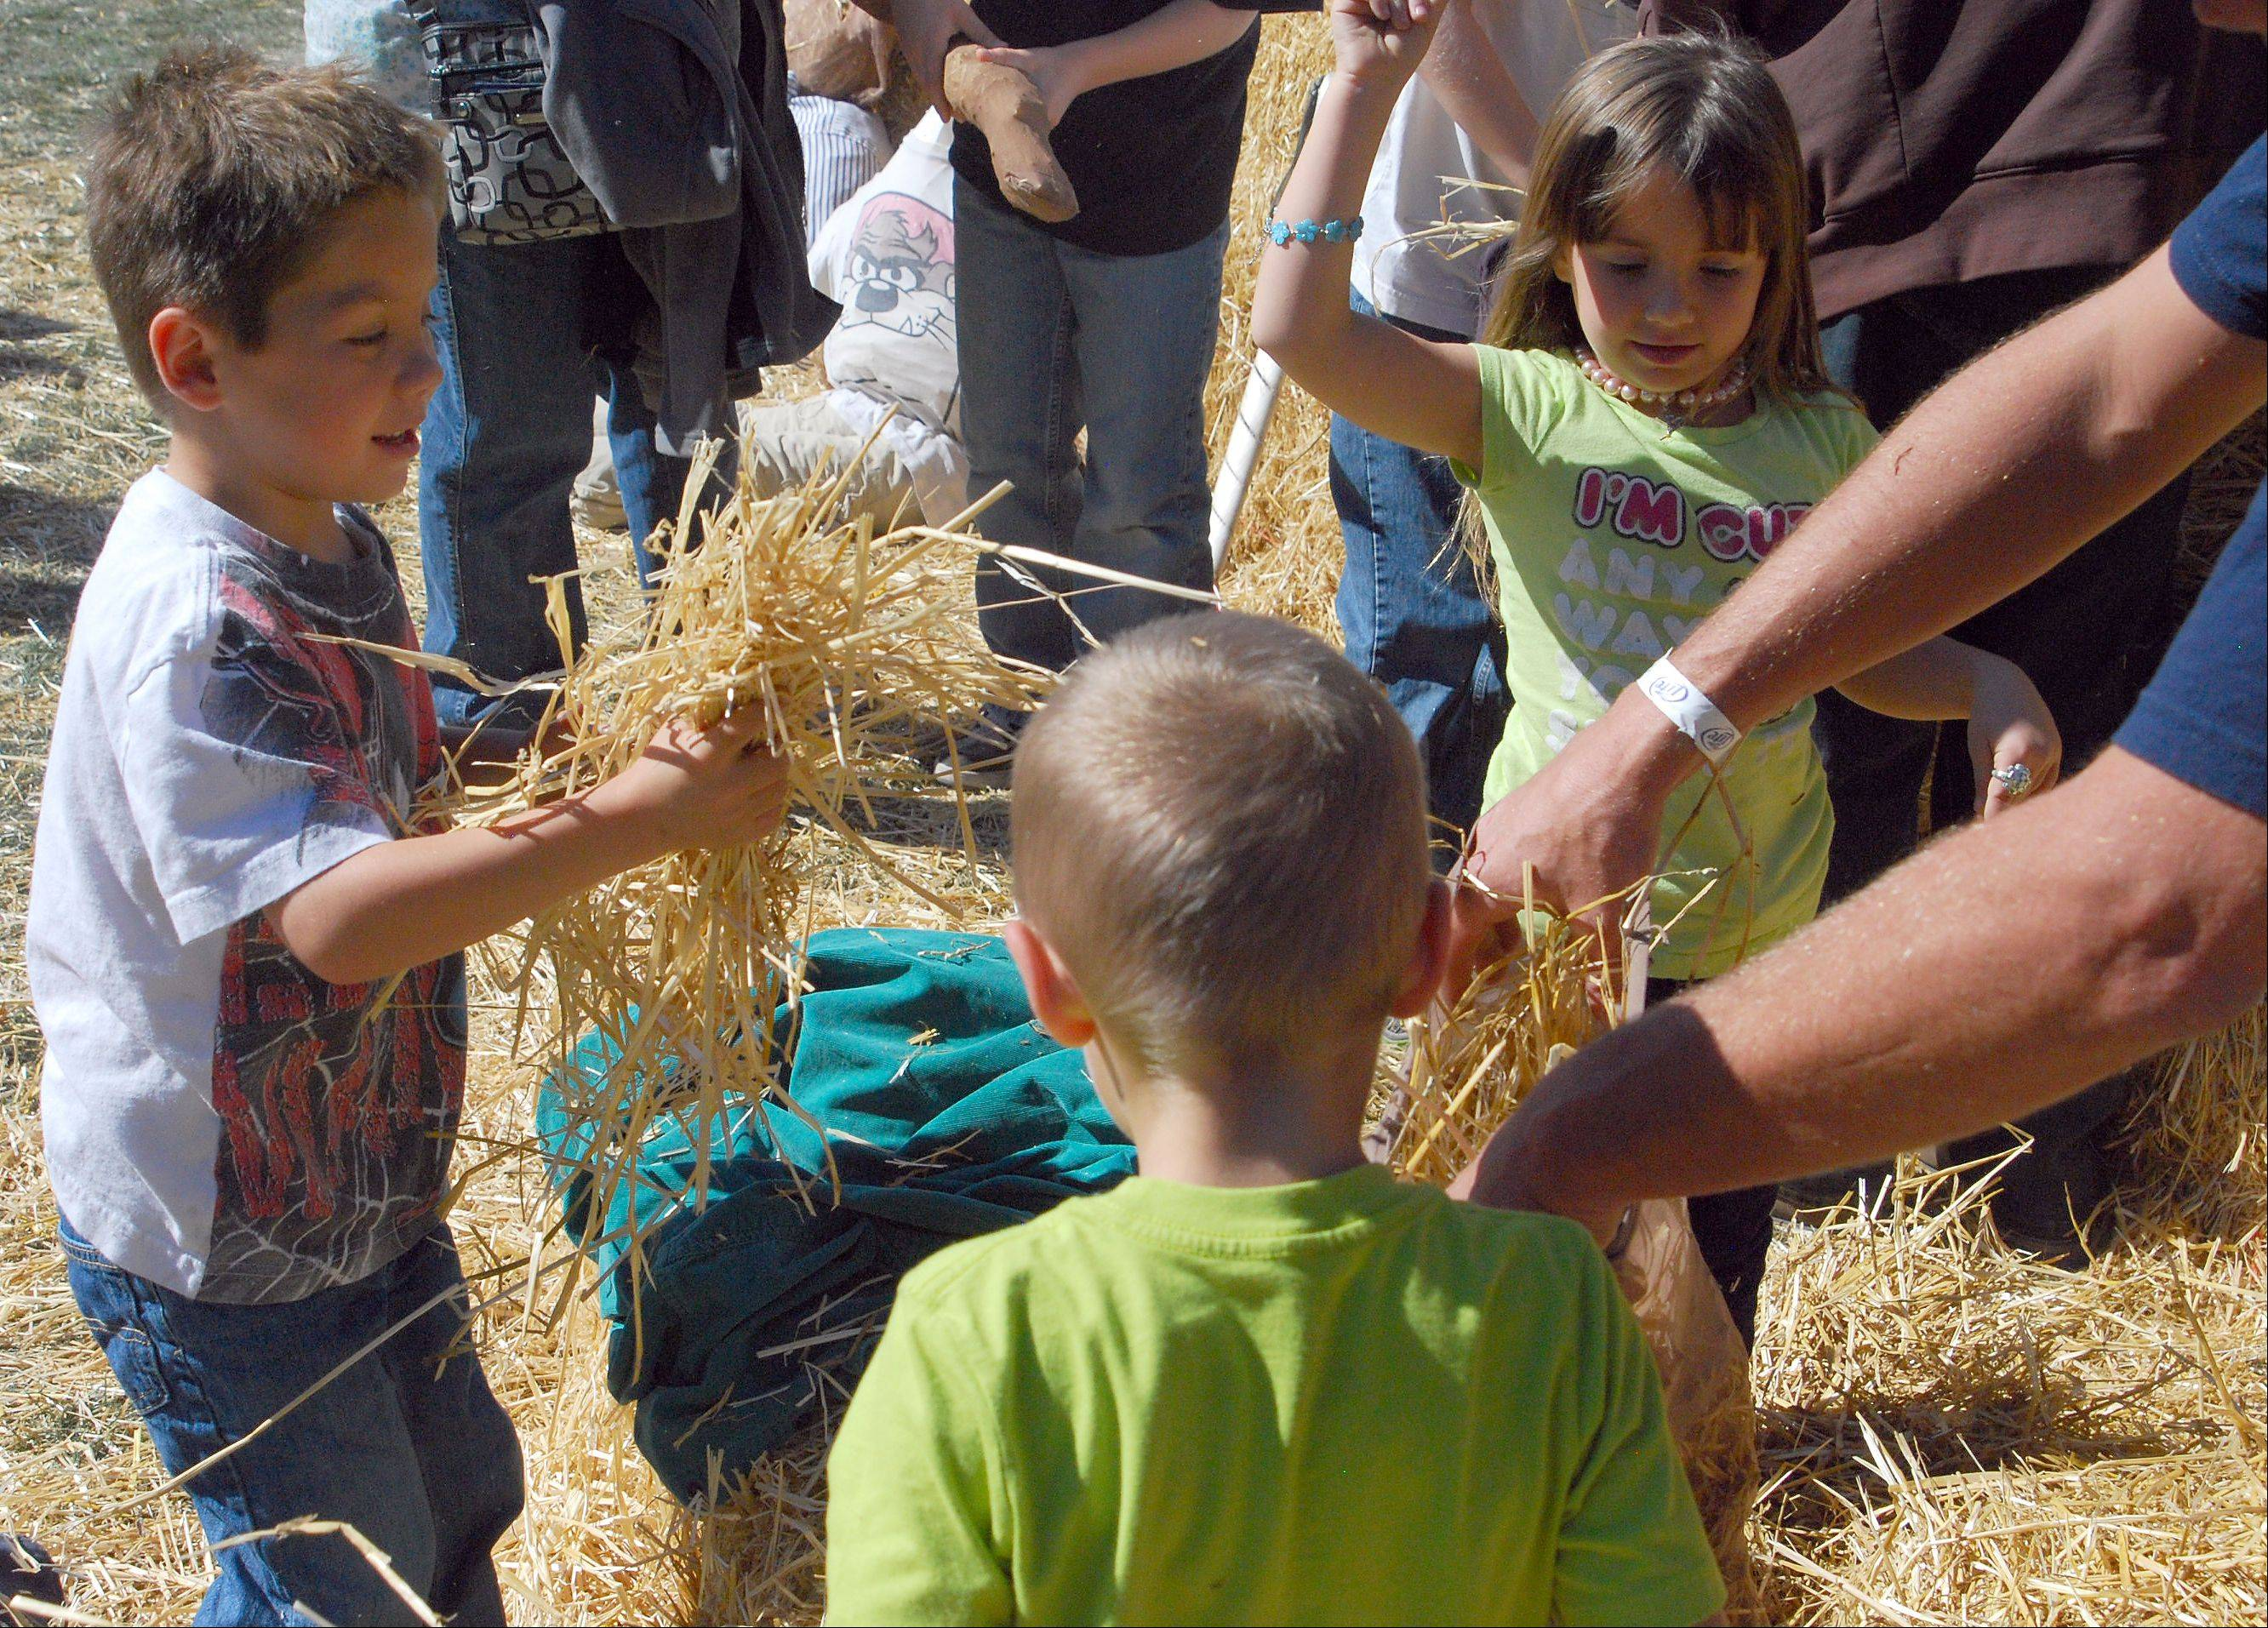 Payton Graiber, 5, stuffs straw into the body of a scarecrow he built with his father, Michael Graiber, and his siblings, Kendall, 5, and Devin, 4, Sunday at Huntley Fall Fest at Deicke Park.